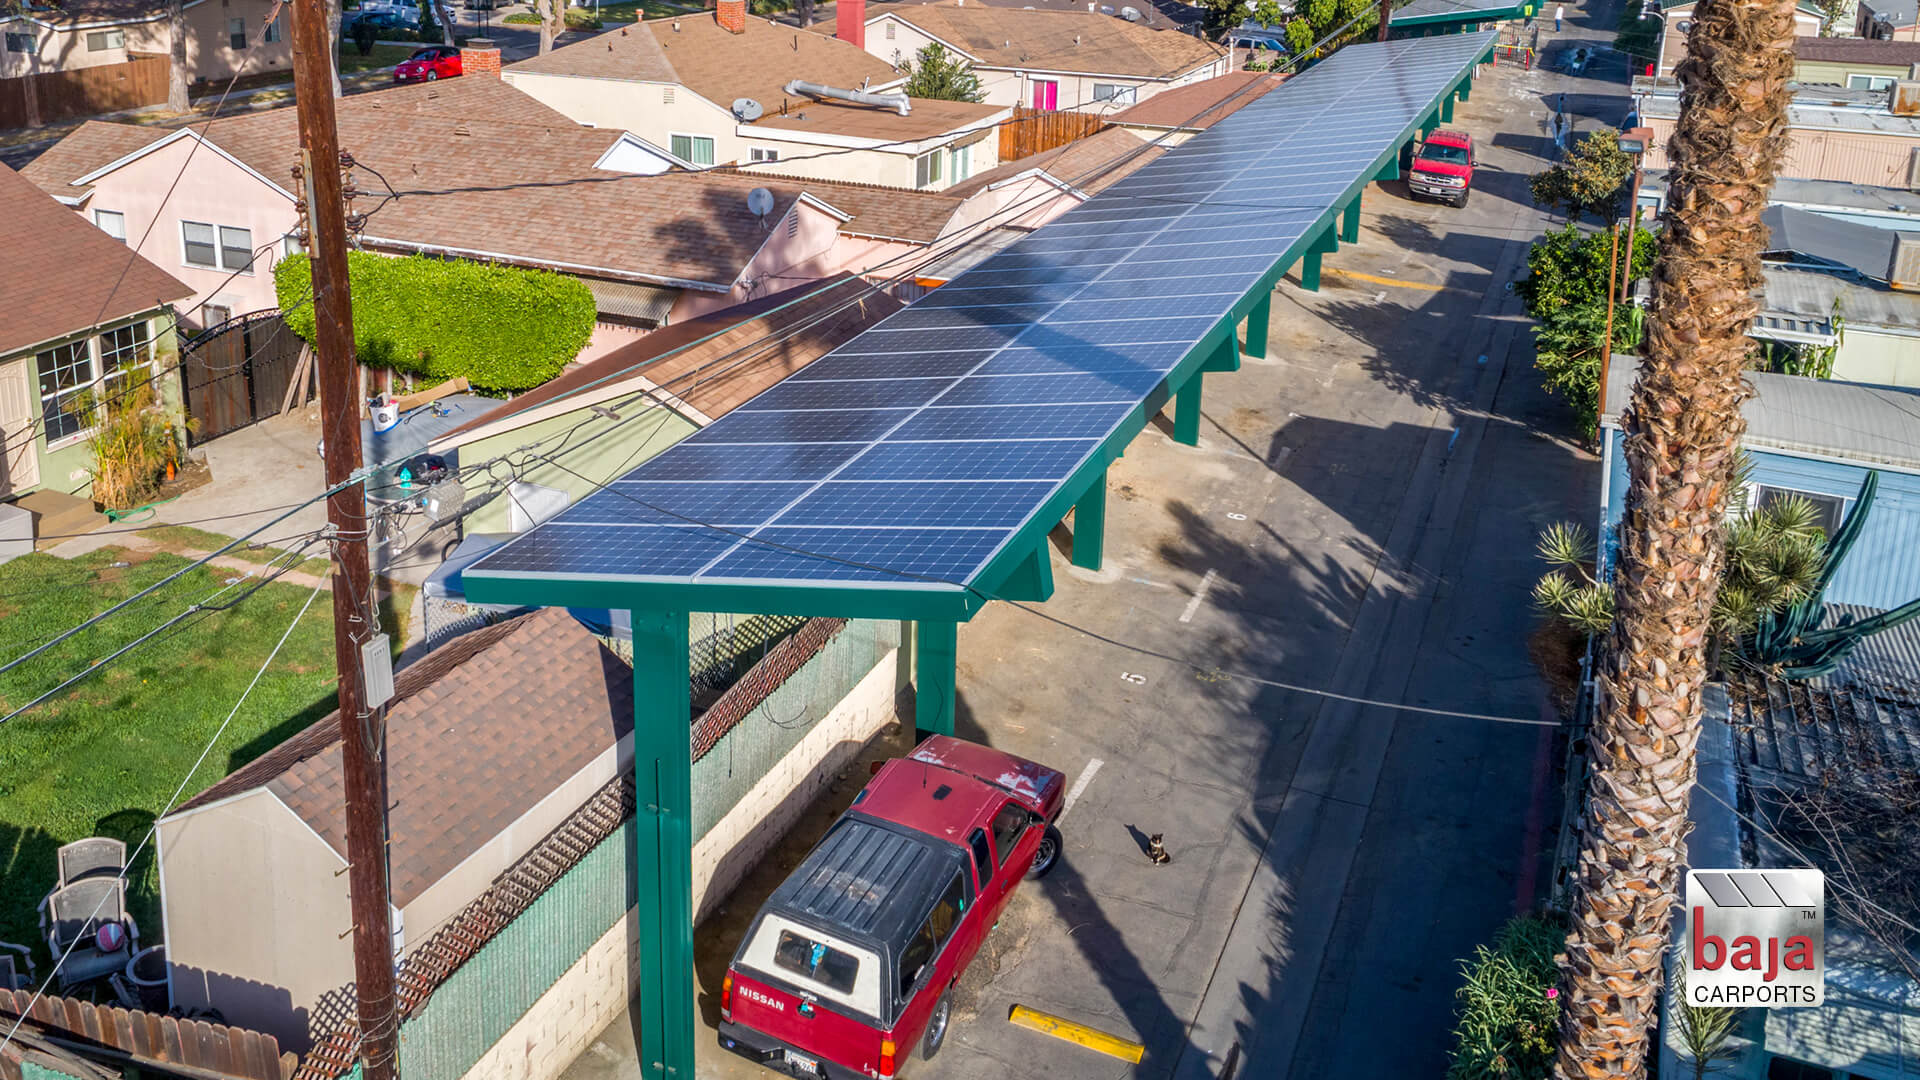 parallel solar carport structure cuts down electric bill and solves parking problem